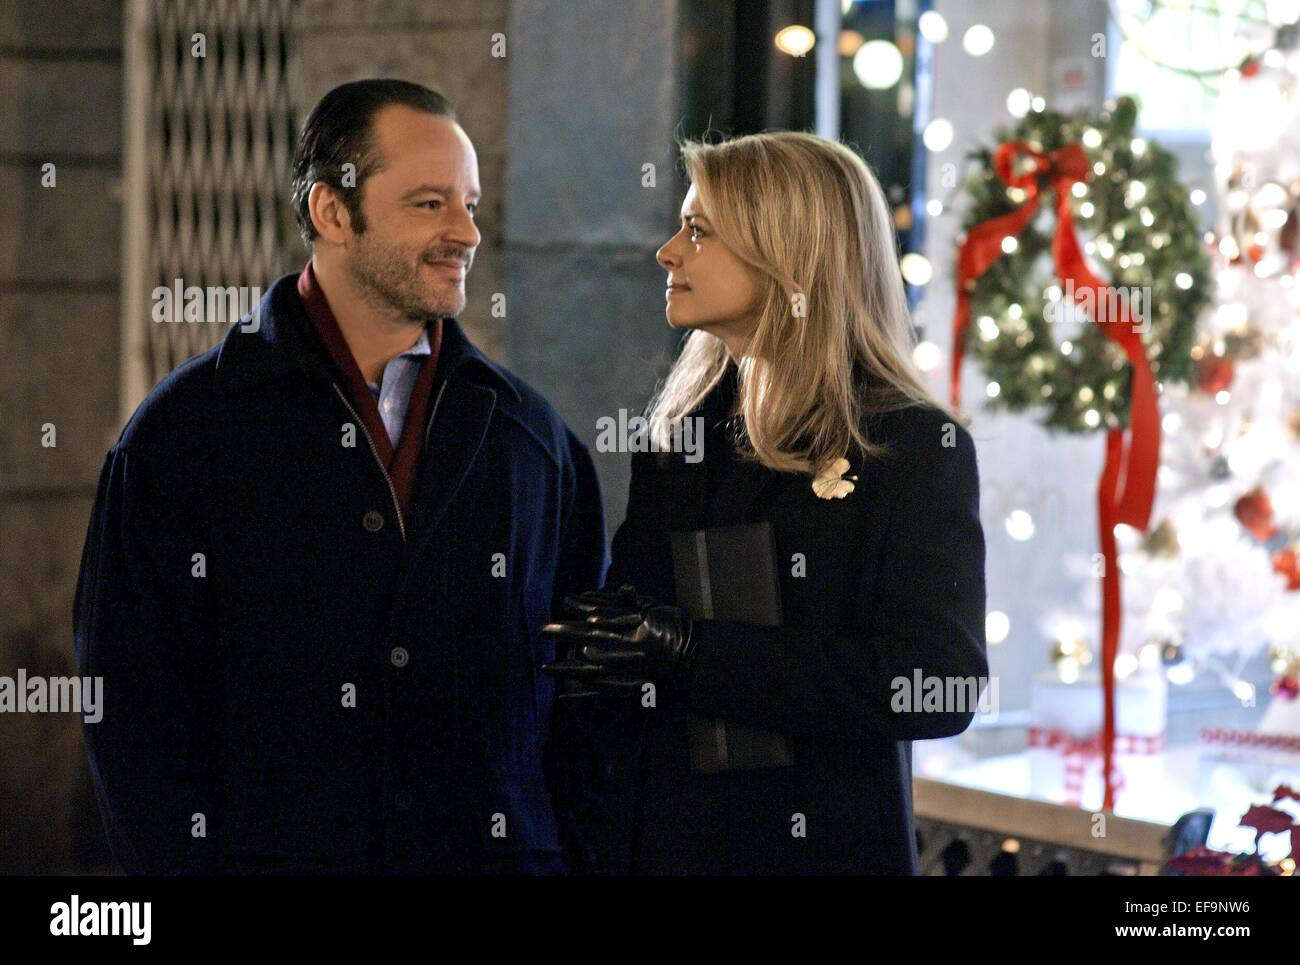 Trading Christmas.Gil Bellows Faith Ford Trading Christmas 2011 Stock Photo